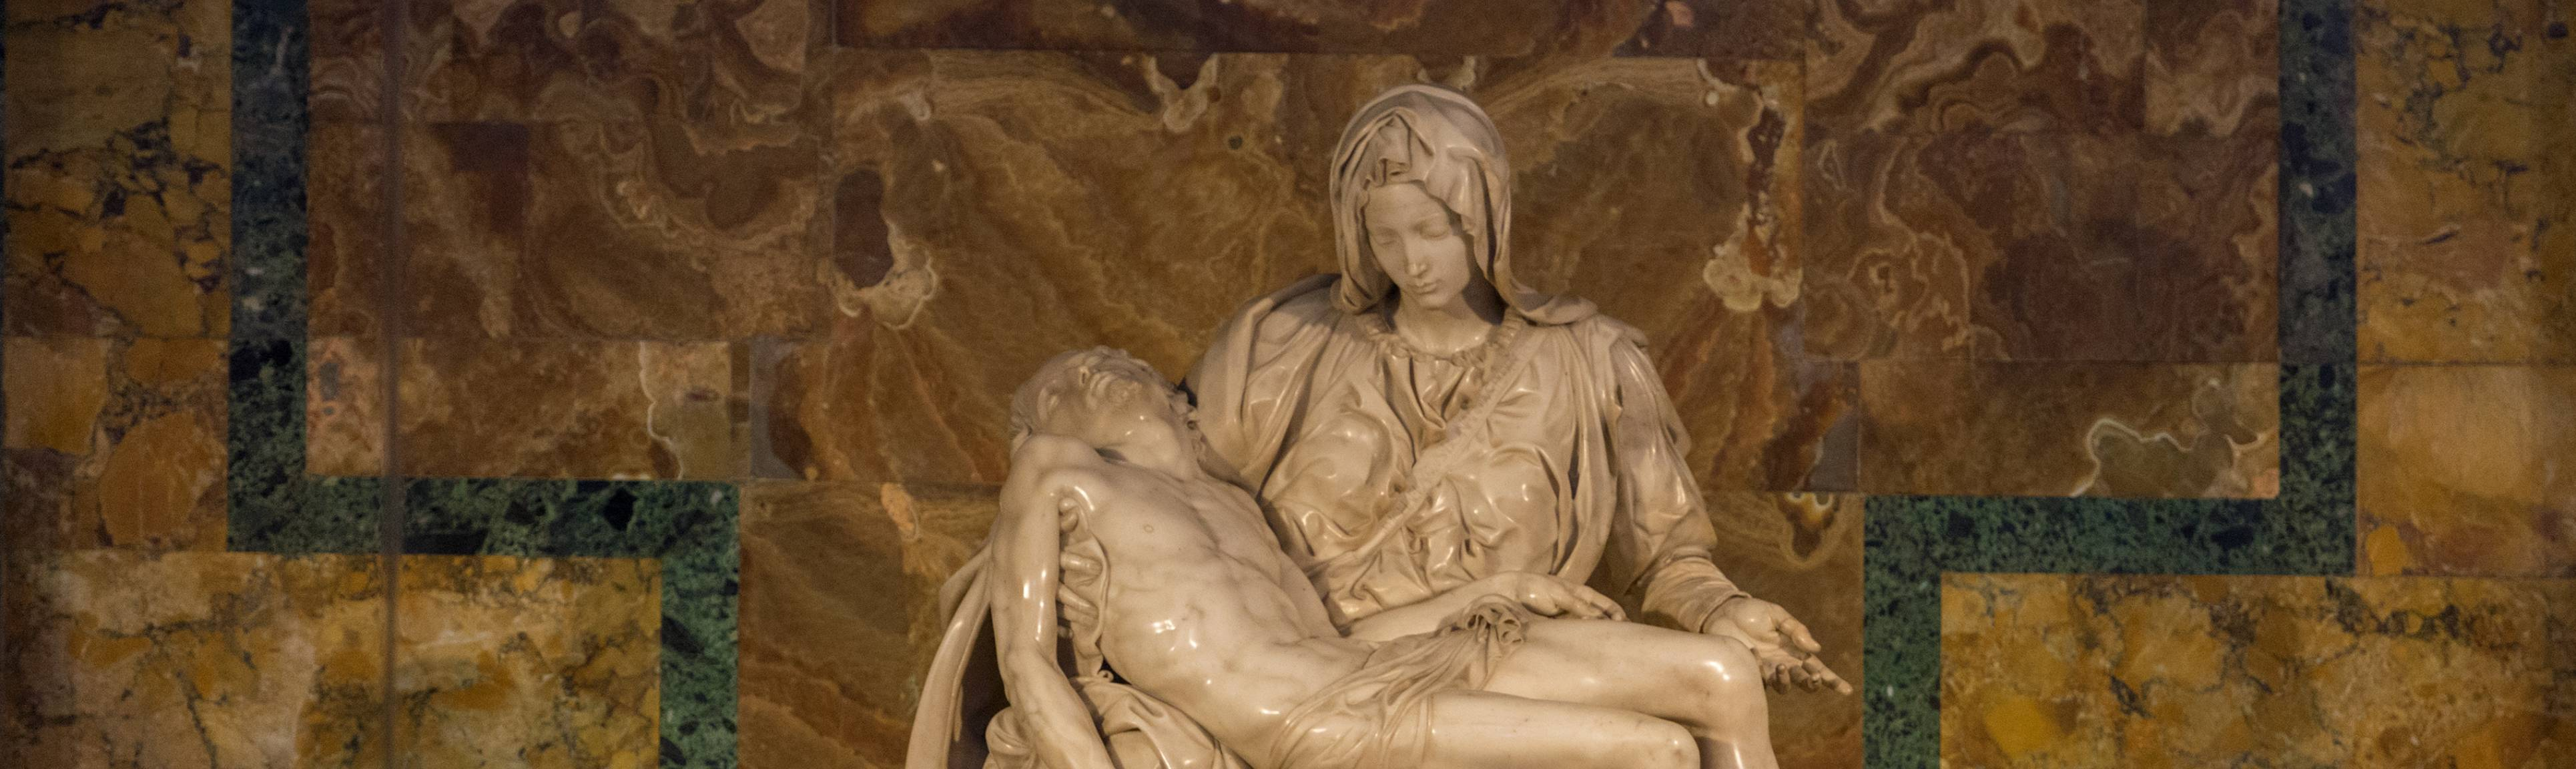 Michelangelo's Pieta showing Mary holding Jesus at St. Peter's Basilica